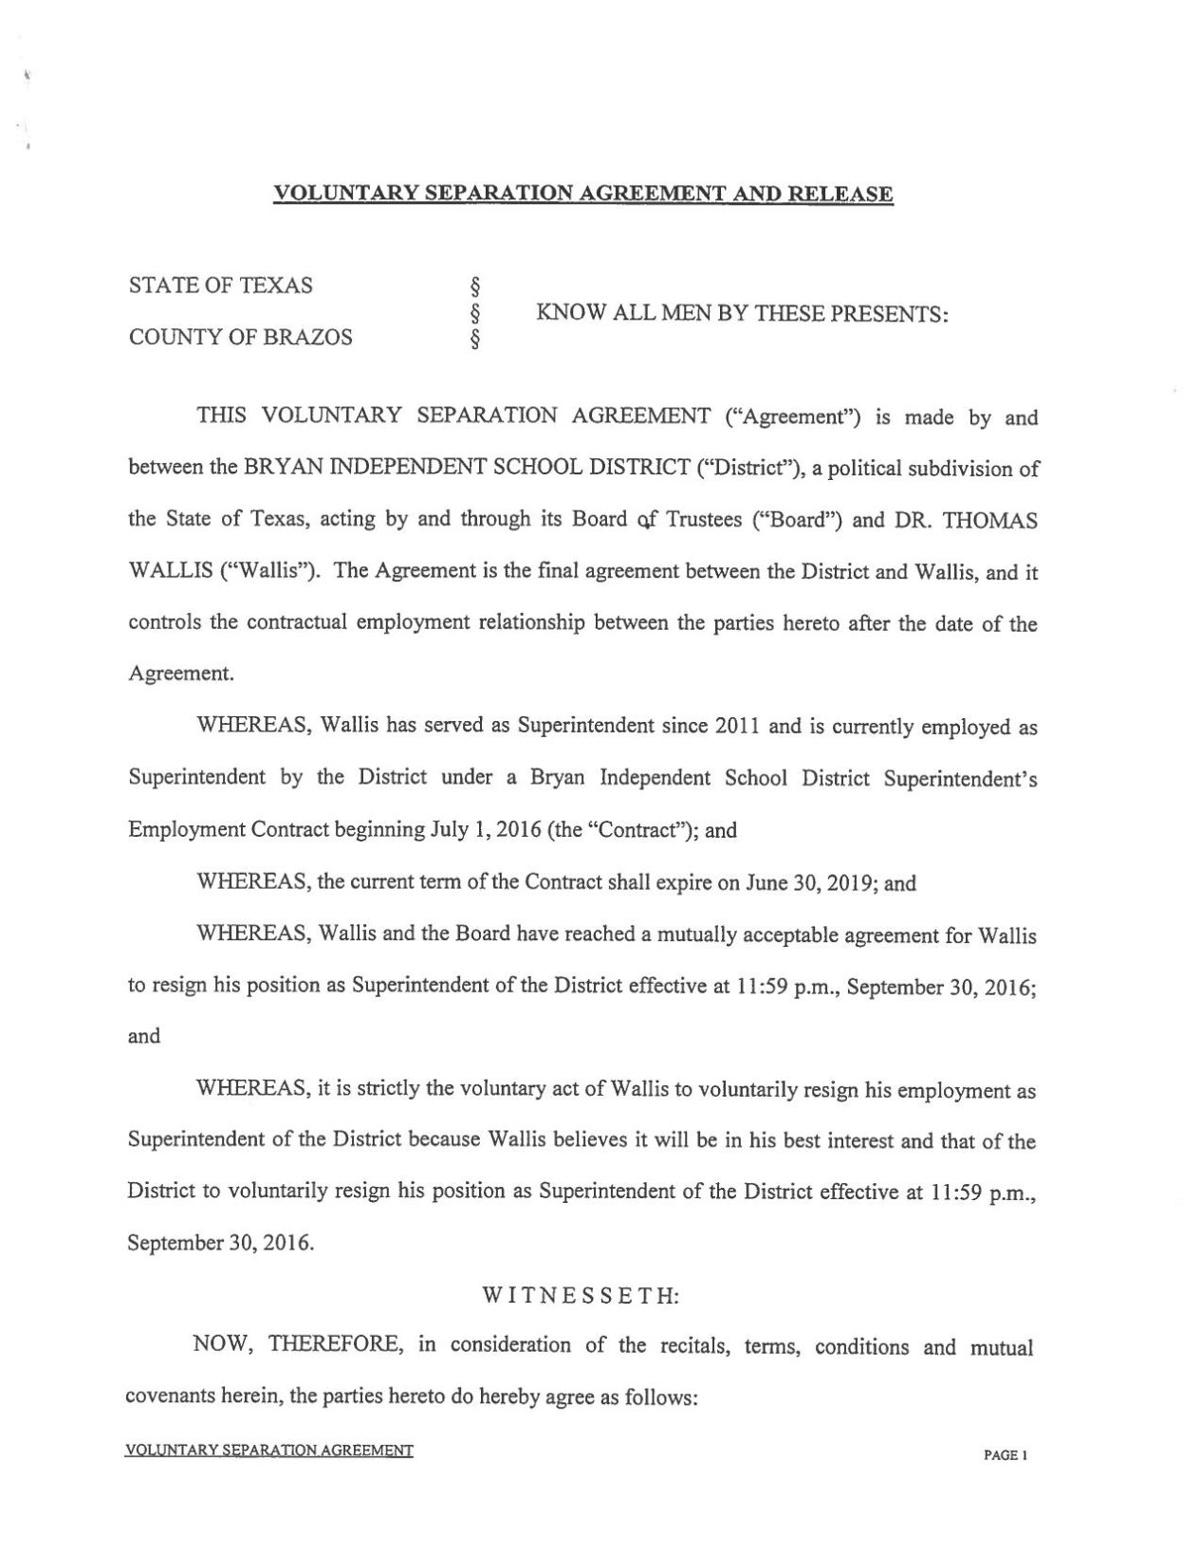 Bryan isd voluntary separation agreement with tommy wallis download pdf bryan isd voluntary separation agreement with tommy wallis thecheapjerseys Images